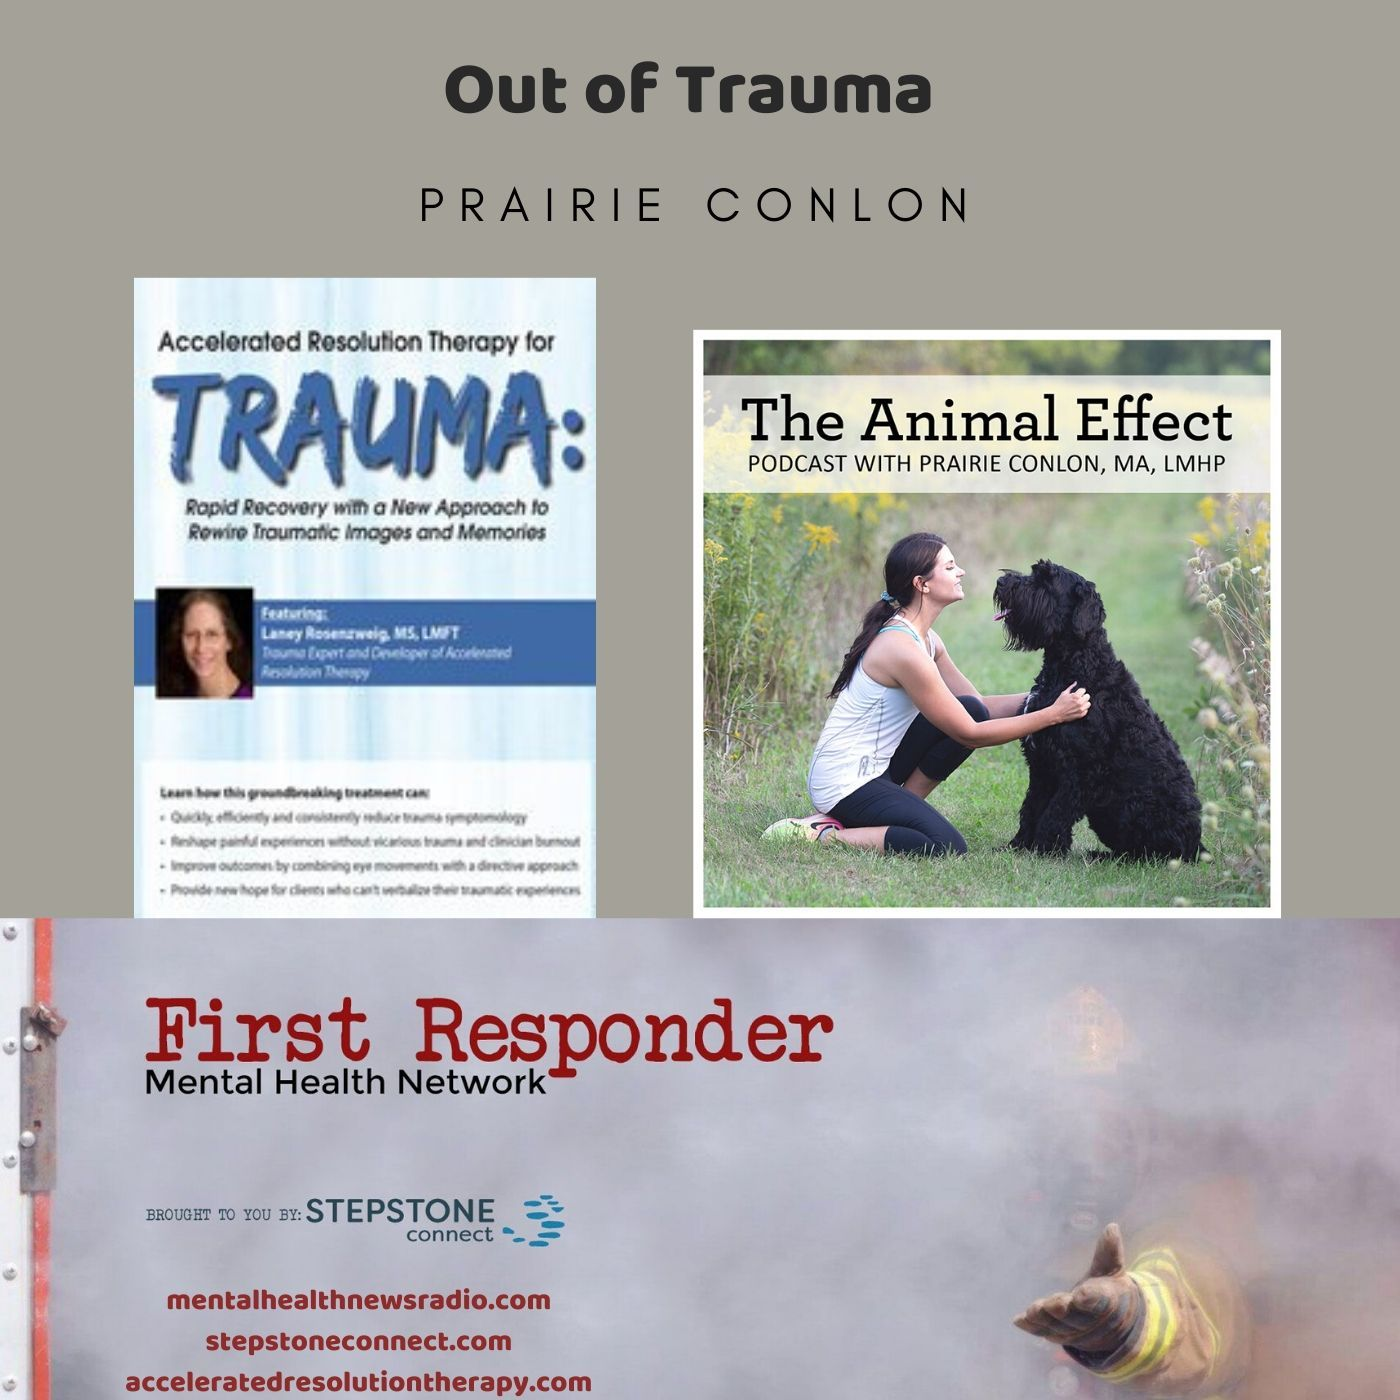 Mental Health News Radio - Accelerated Resolution Therapy: Out of Trauma